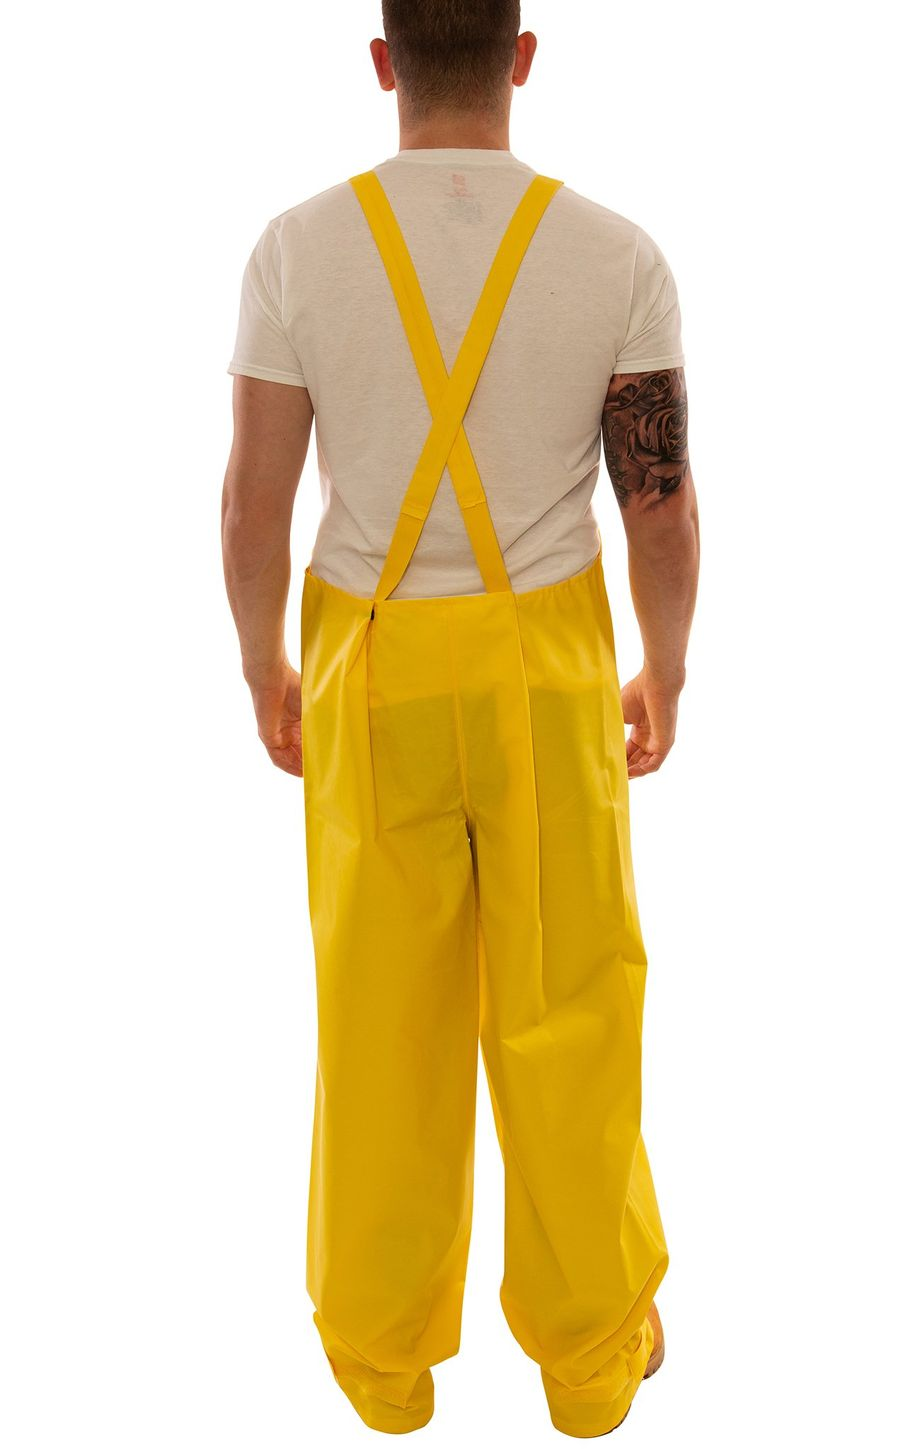 tingley-o56007-durascrim-fire-resistant-overalls-pvc-coated-chemical-resistant-with-plain-front-back.jpg